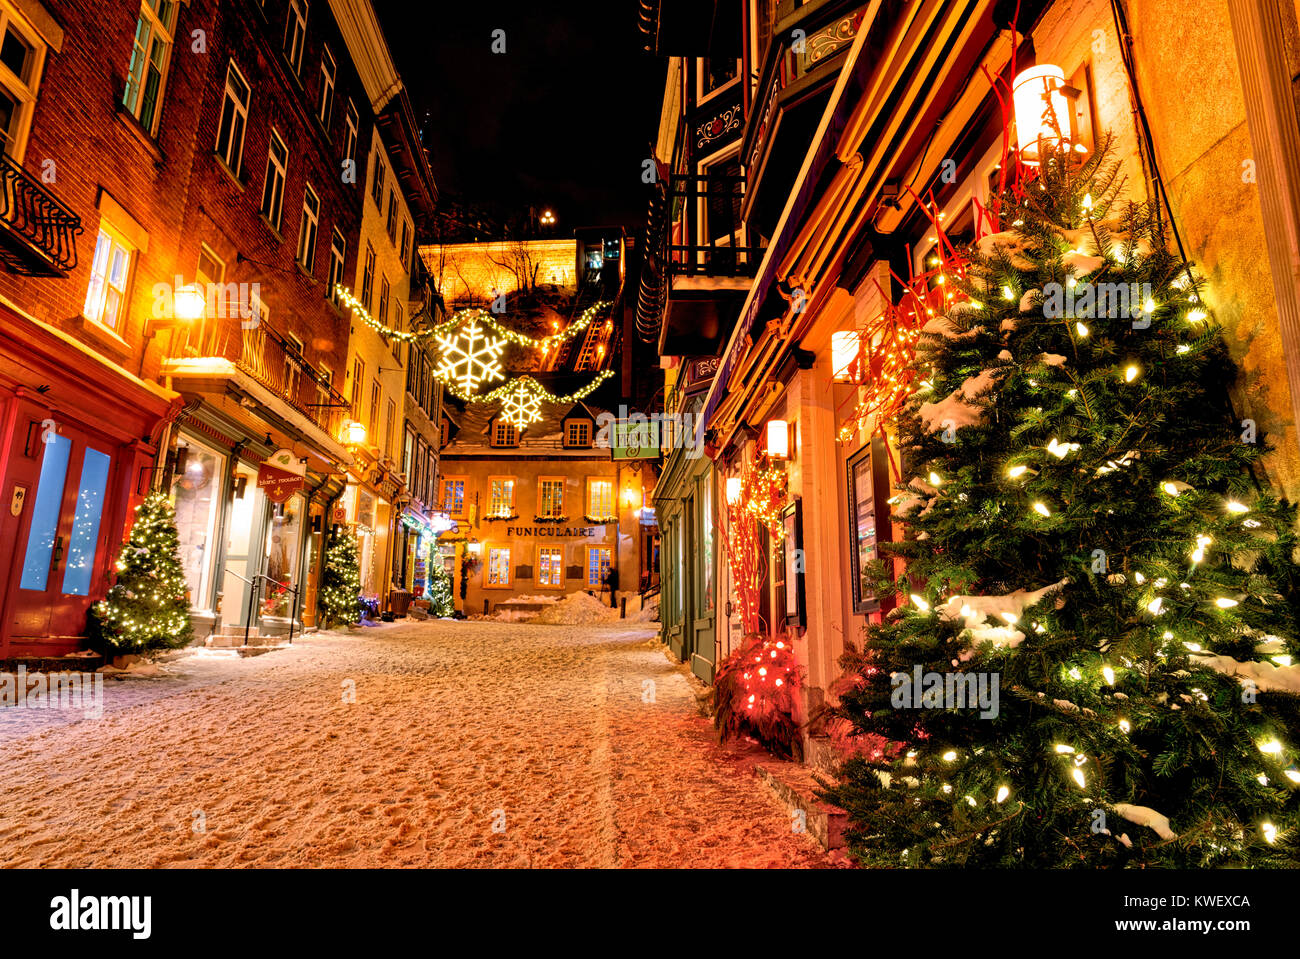 Christmas decorations and fresh snow in Quebec City's Petit Champlain area at night. Looking up Rue Sou-le-Fort - Stock Image